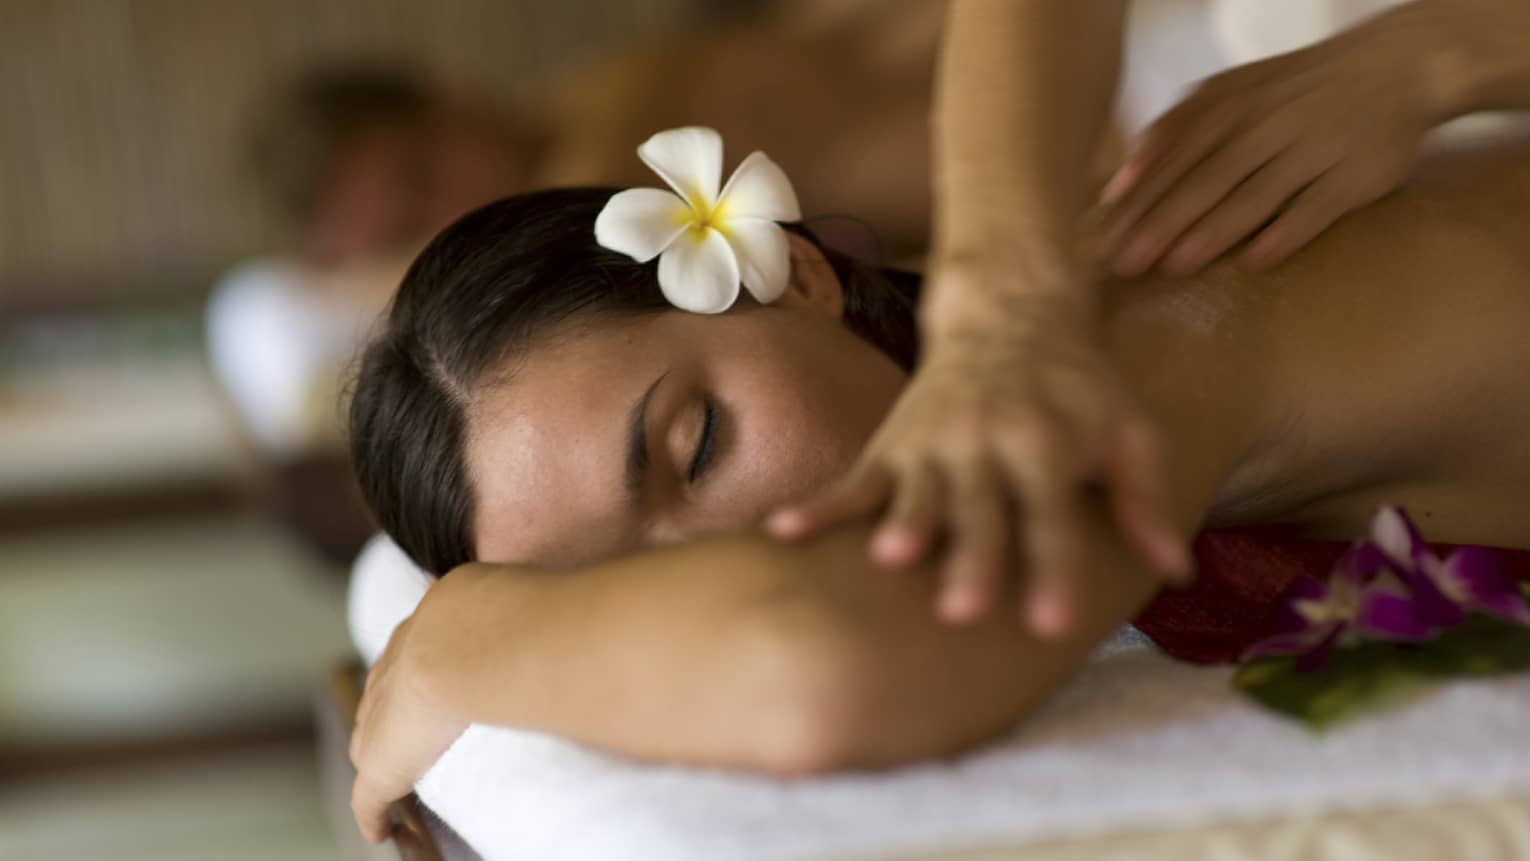 Woman with white flower in hair rests head, arms on spa massage table